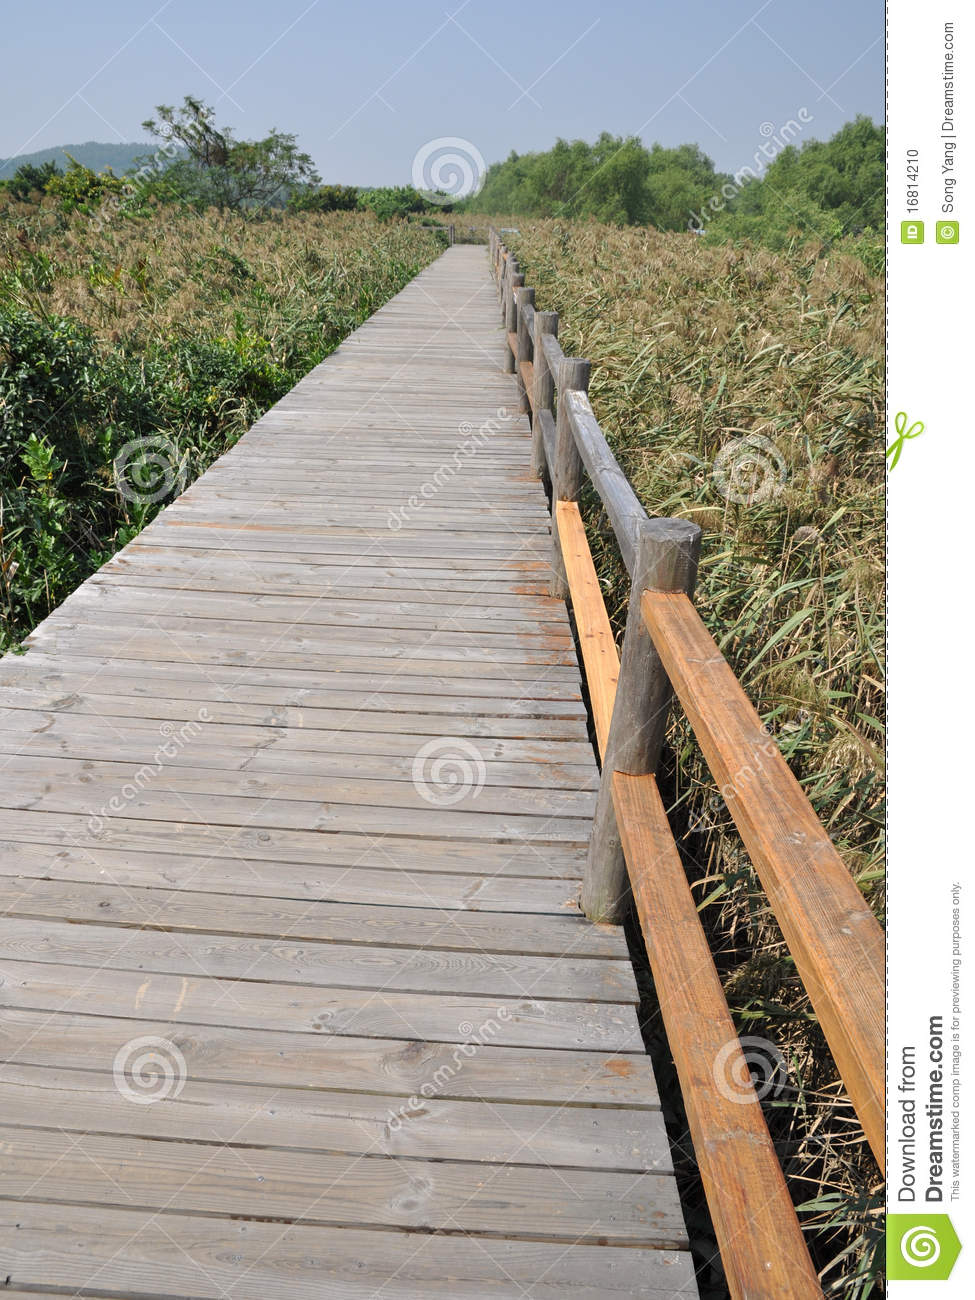 Wood plank road stock photo image